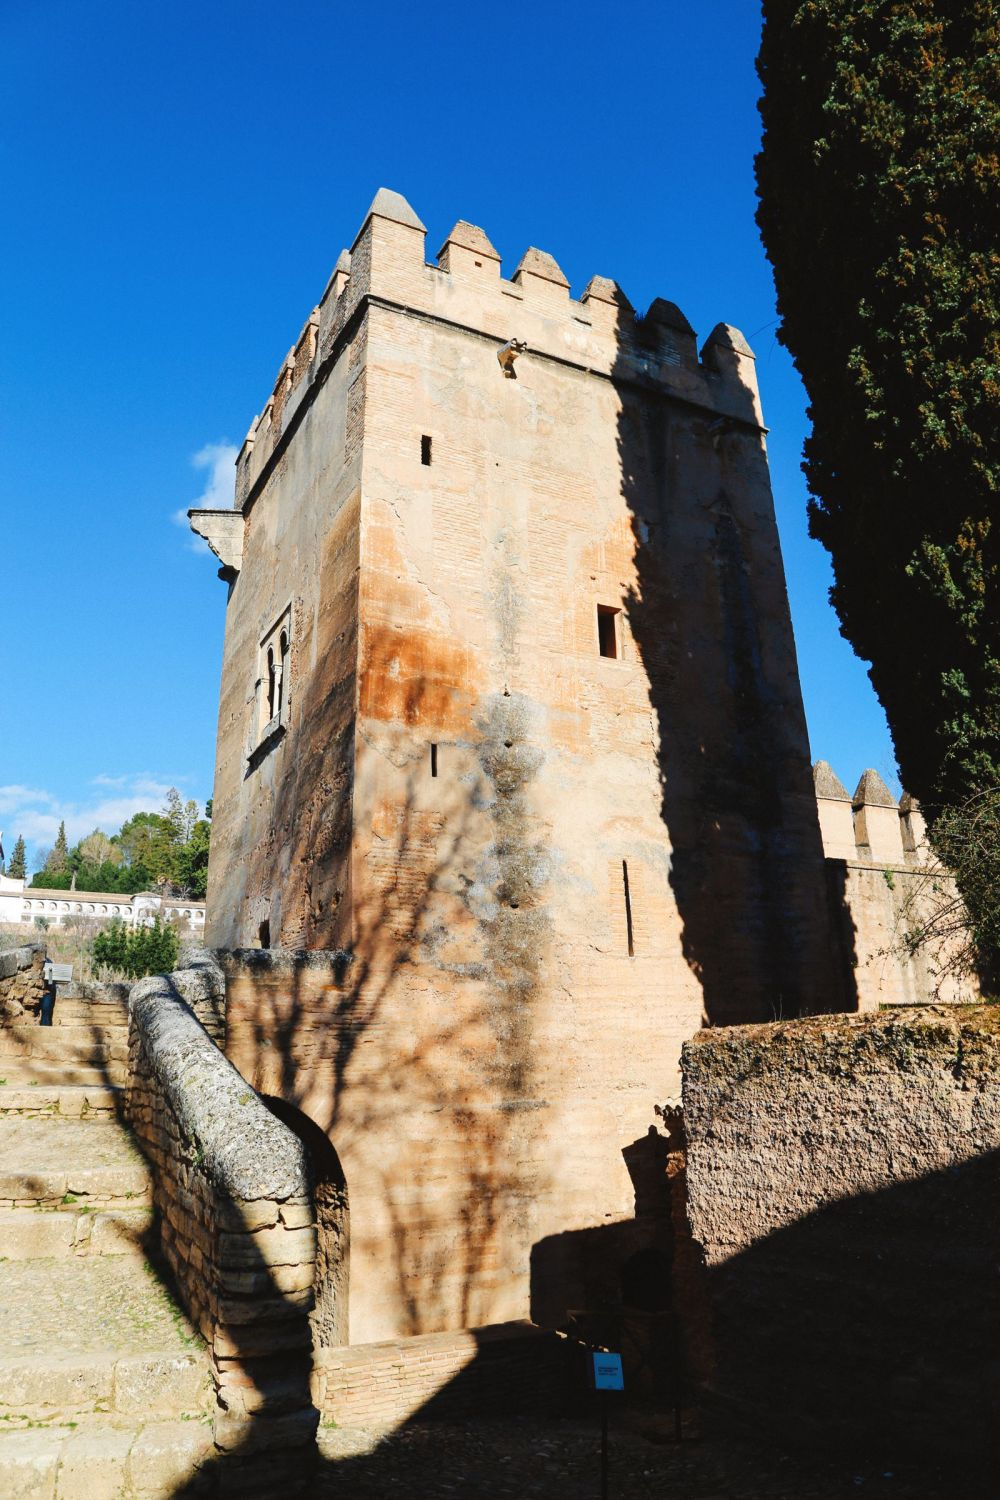 The Amazingly Intricate Alhambra Palace of Spain (94)